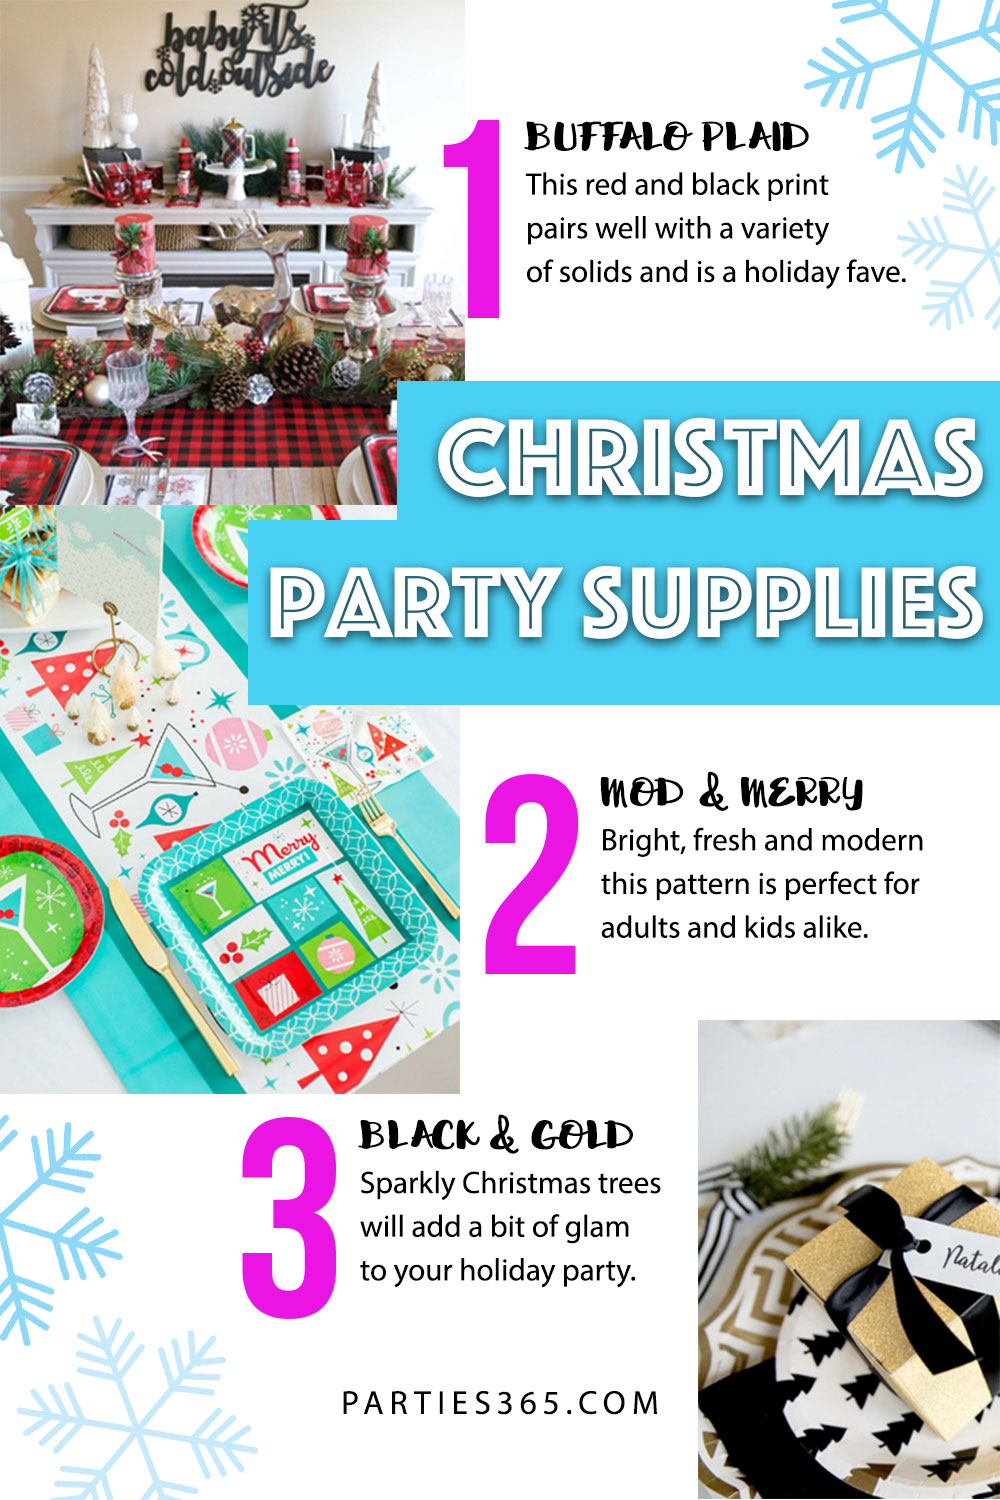 Christmas party supplies and themes